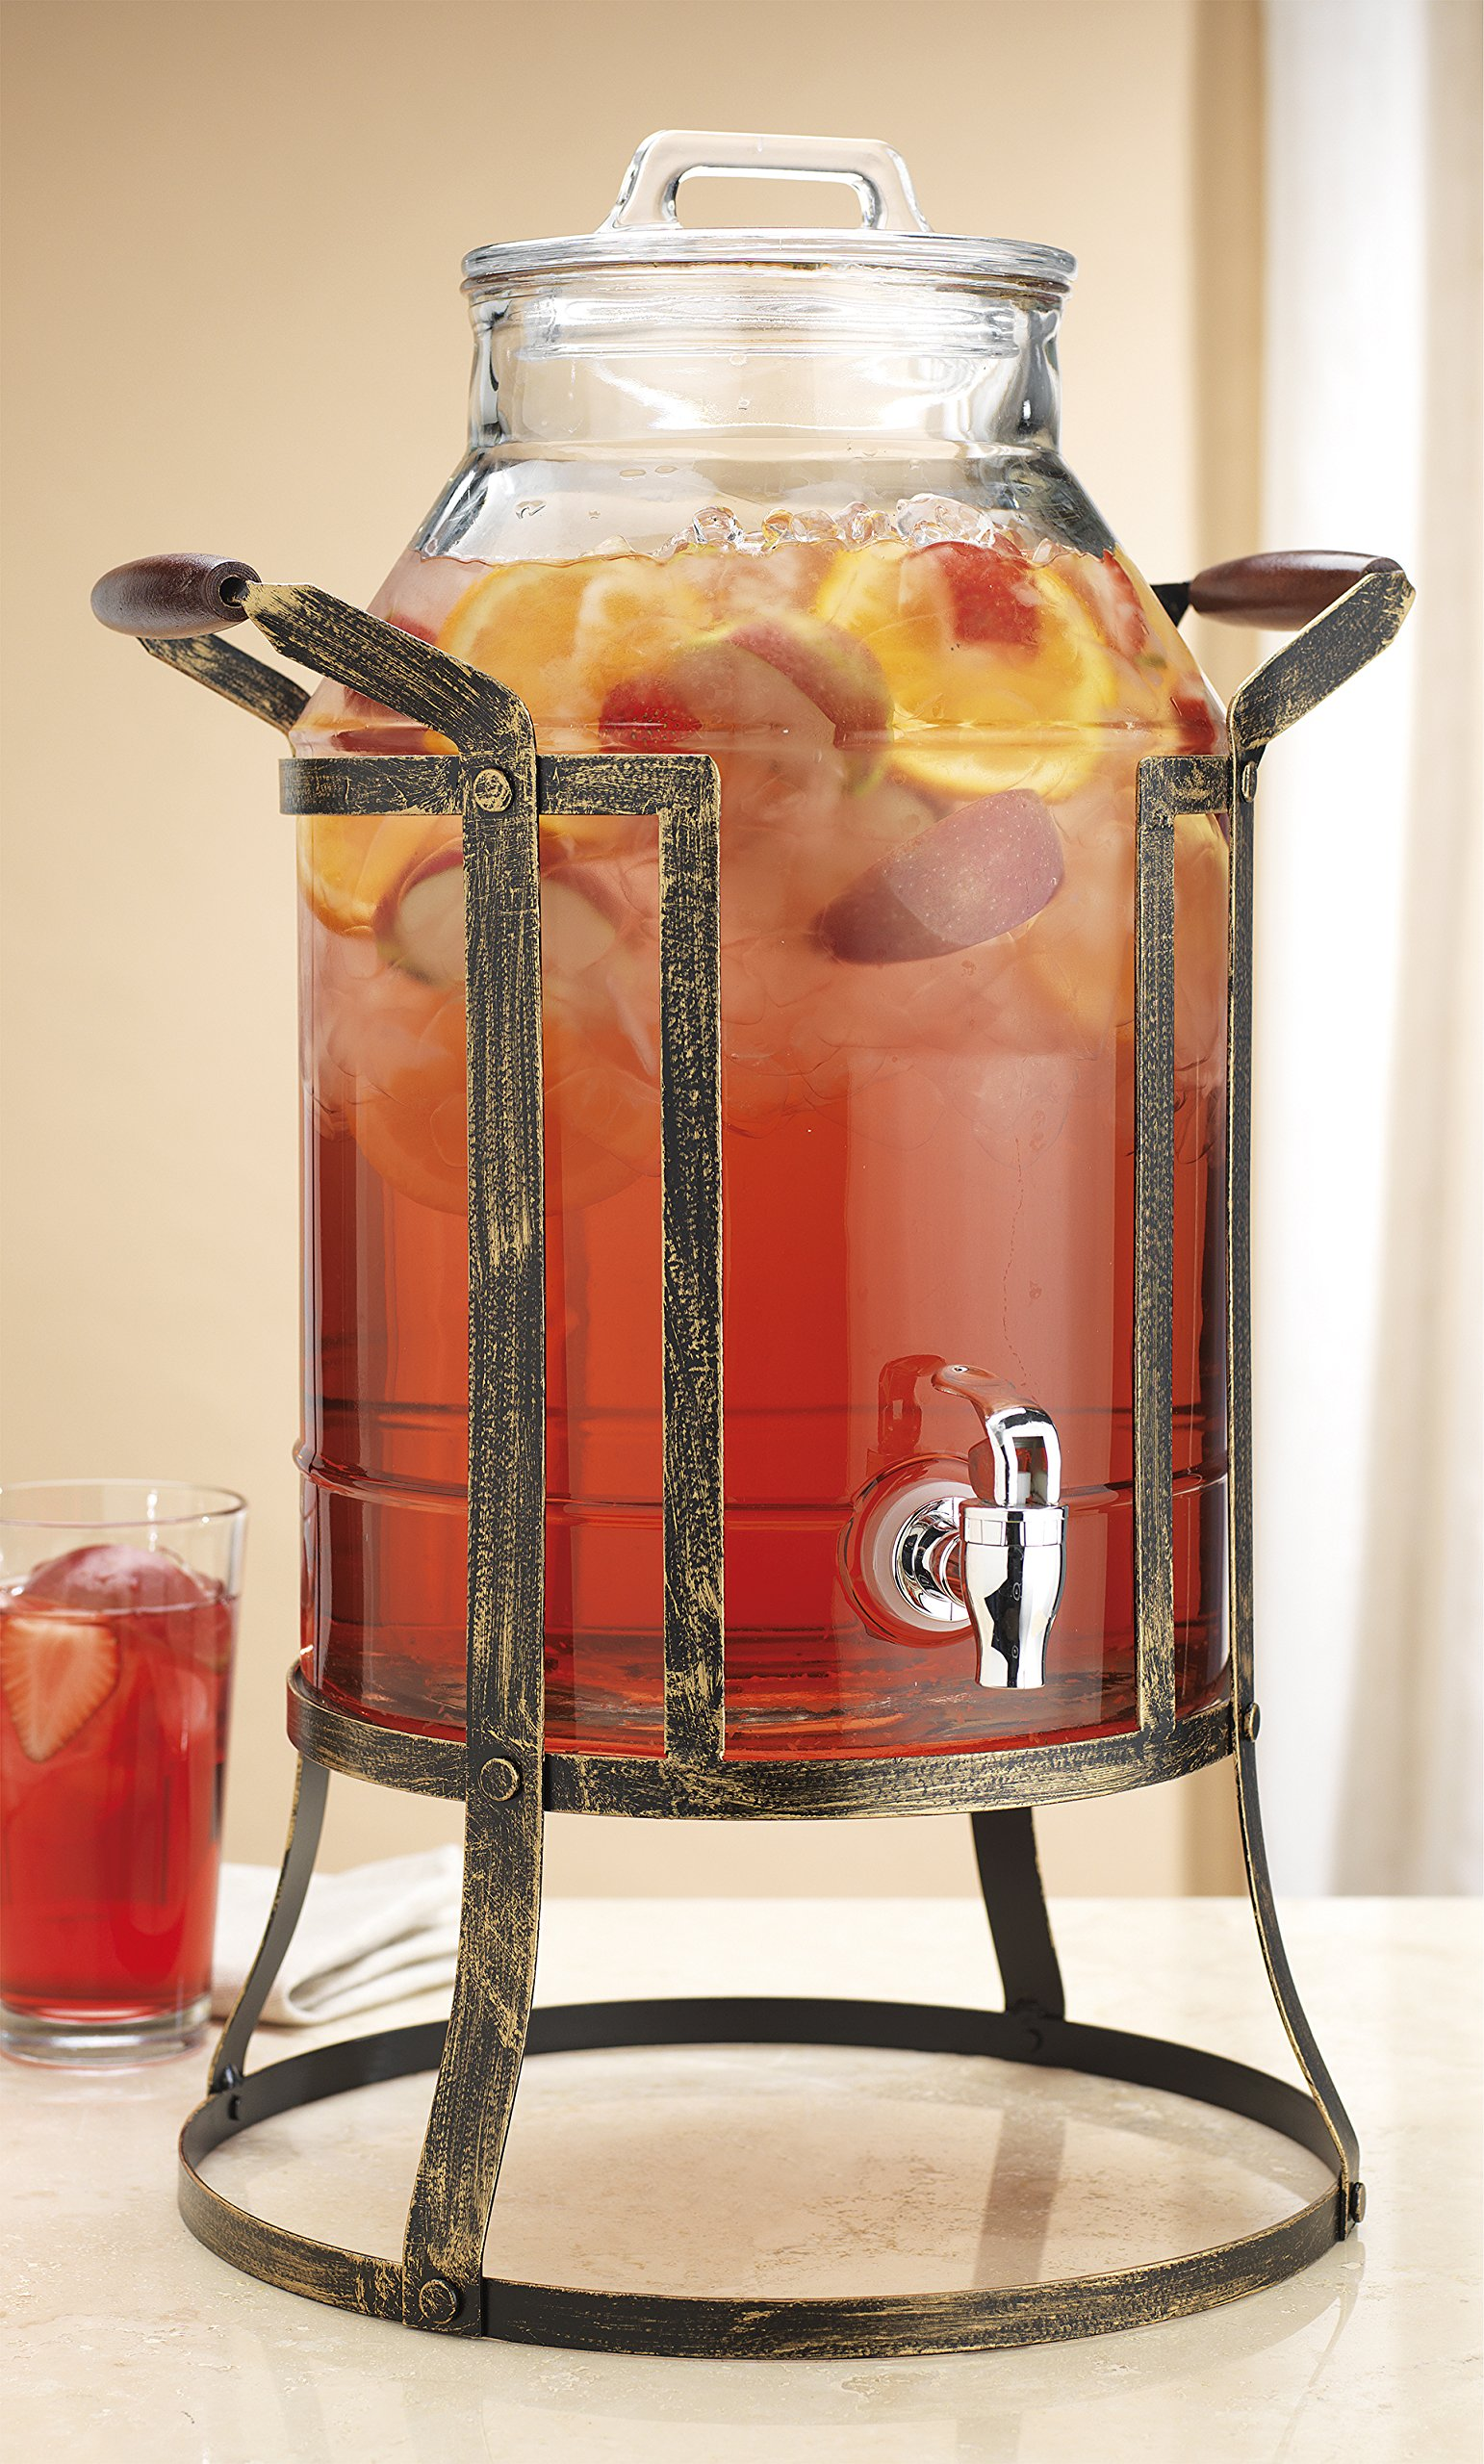 Classic Beverage Panel Drink Dispenser Durable Glass 3 Gallon with Spigot in Metal Caddy